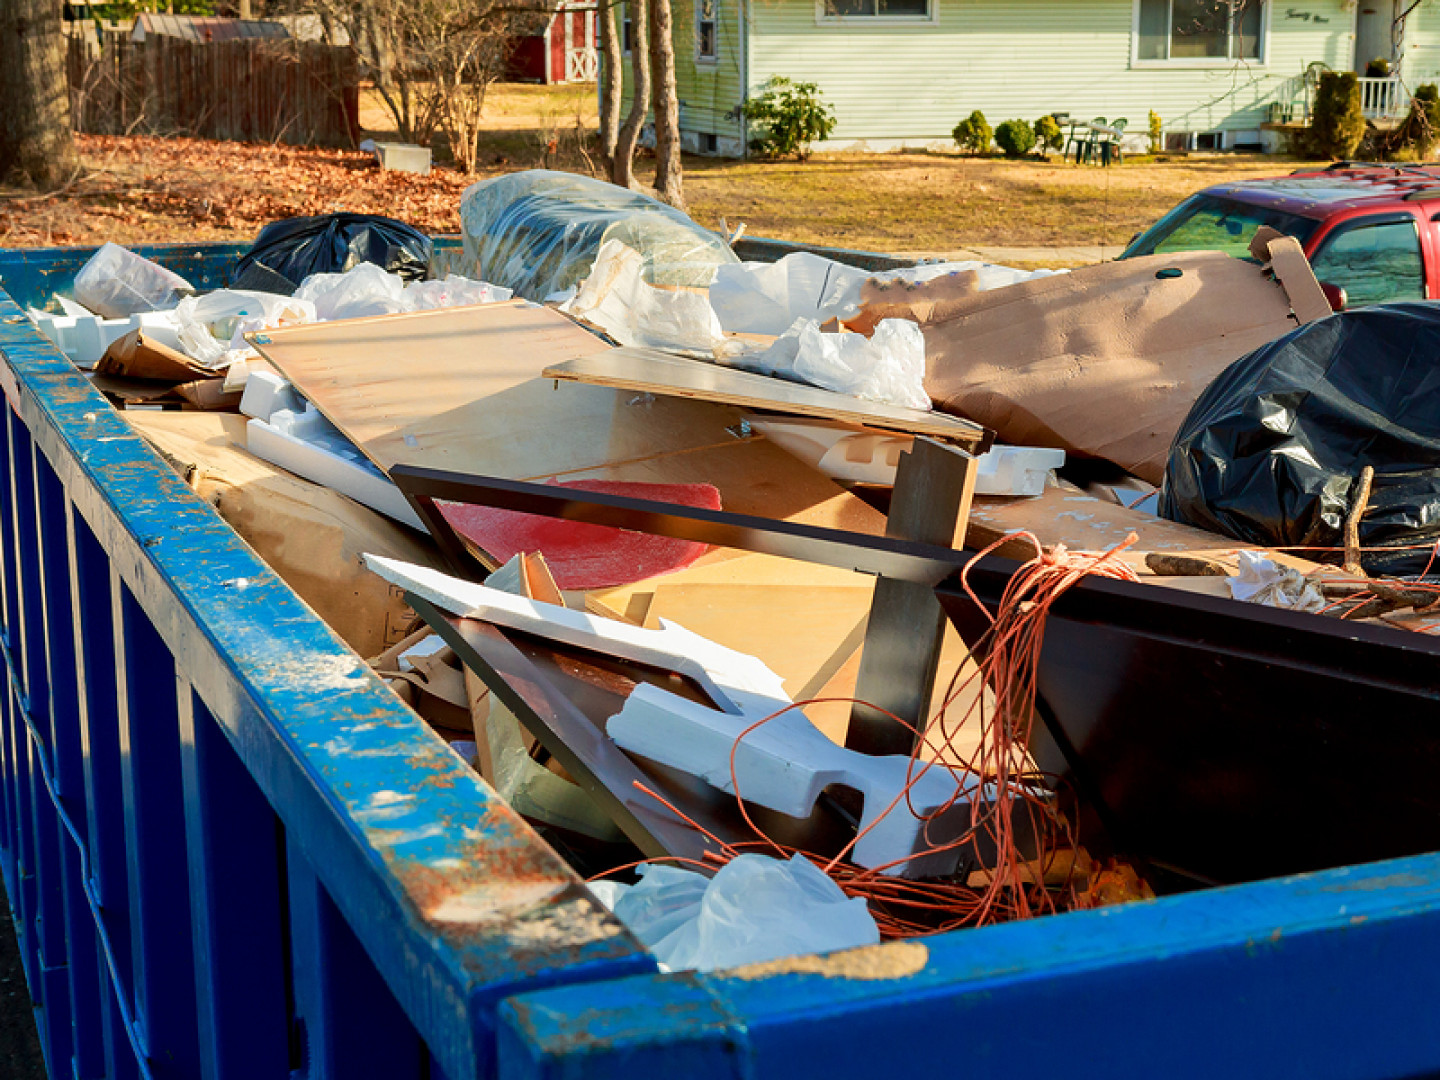 Dispose of junk and waste safely